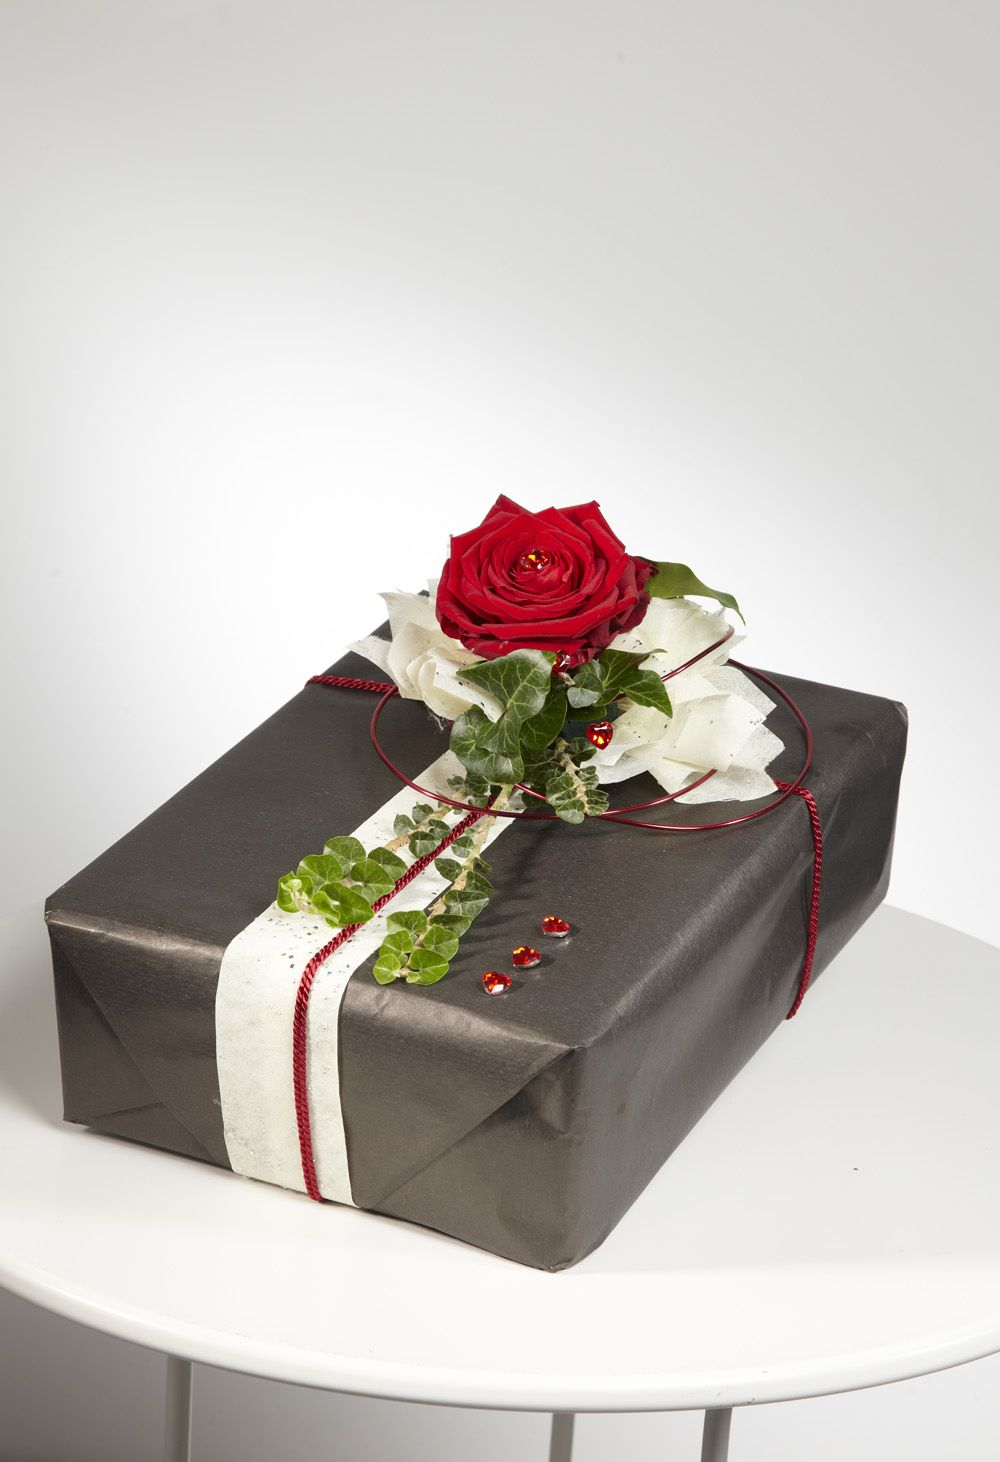 Romantic Valentine's Flowers and Gift Wrapping